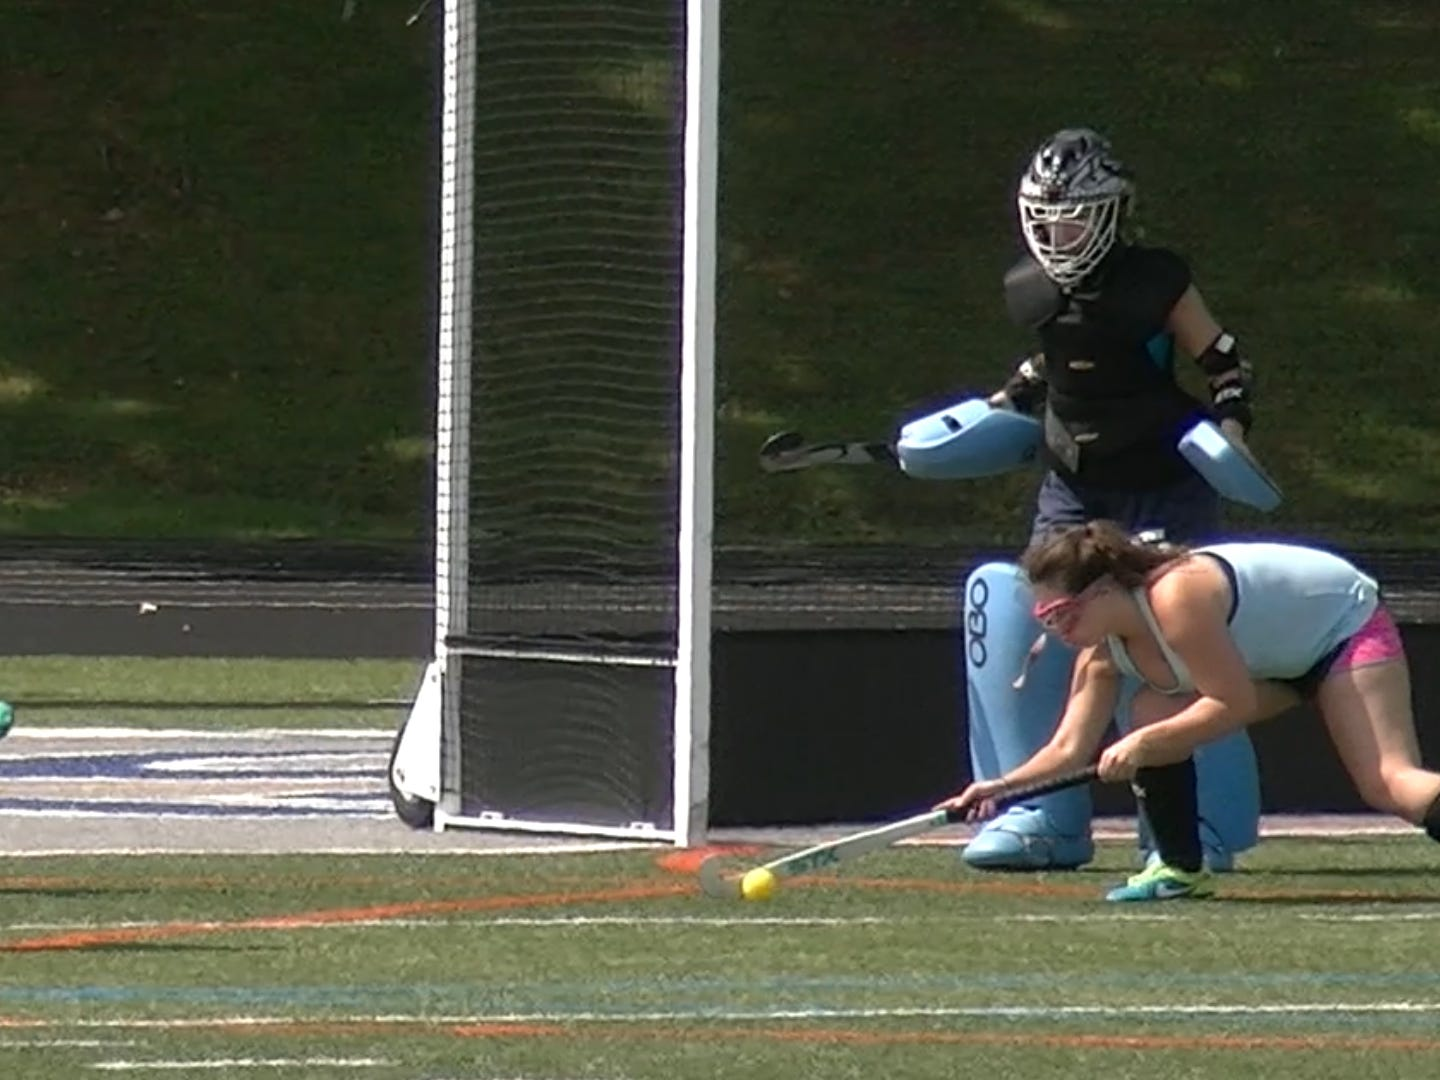 A Dallastown field hockey player reaches down to make a defensive stop in front of her goalie during the first day of fall sports practice Monday, Aug. 13, 2018.